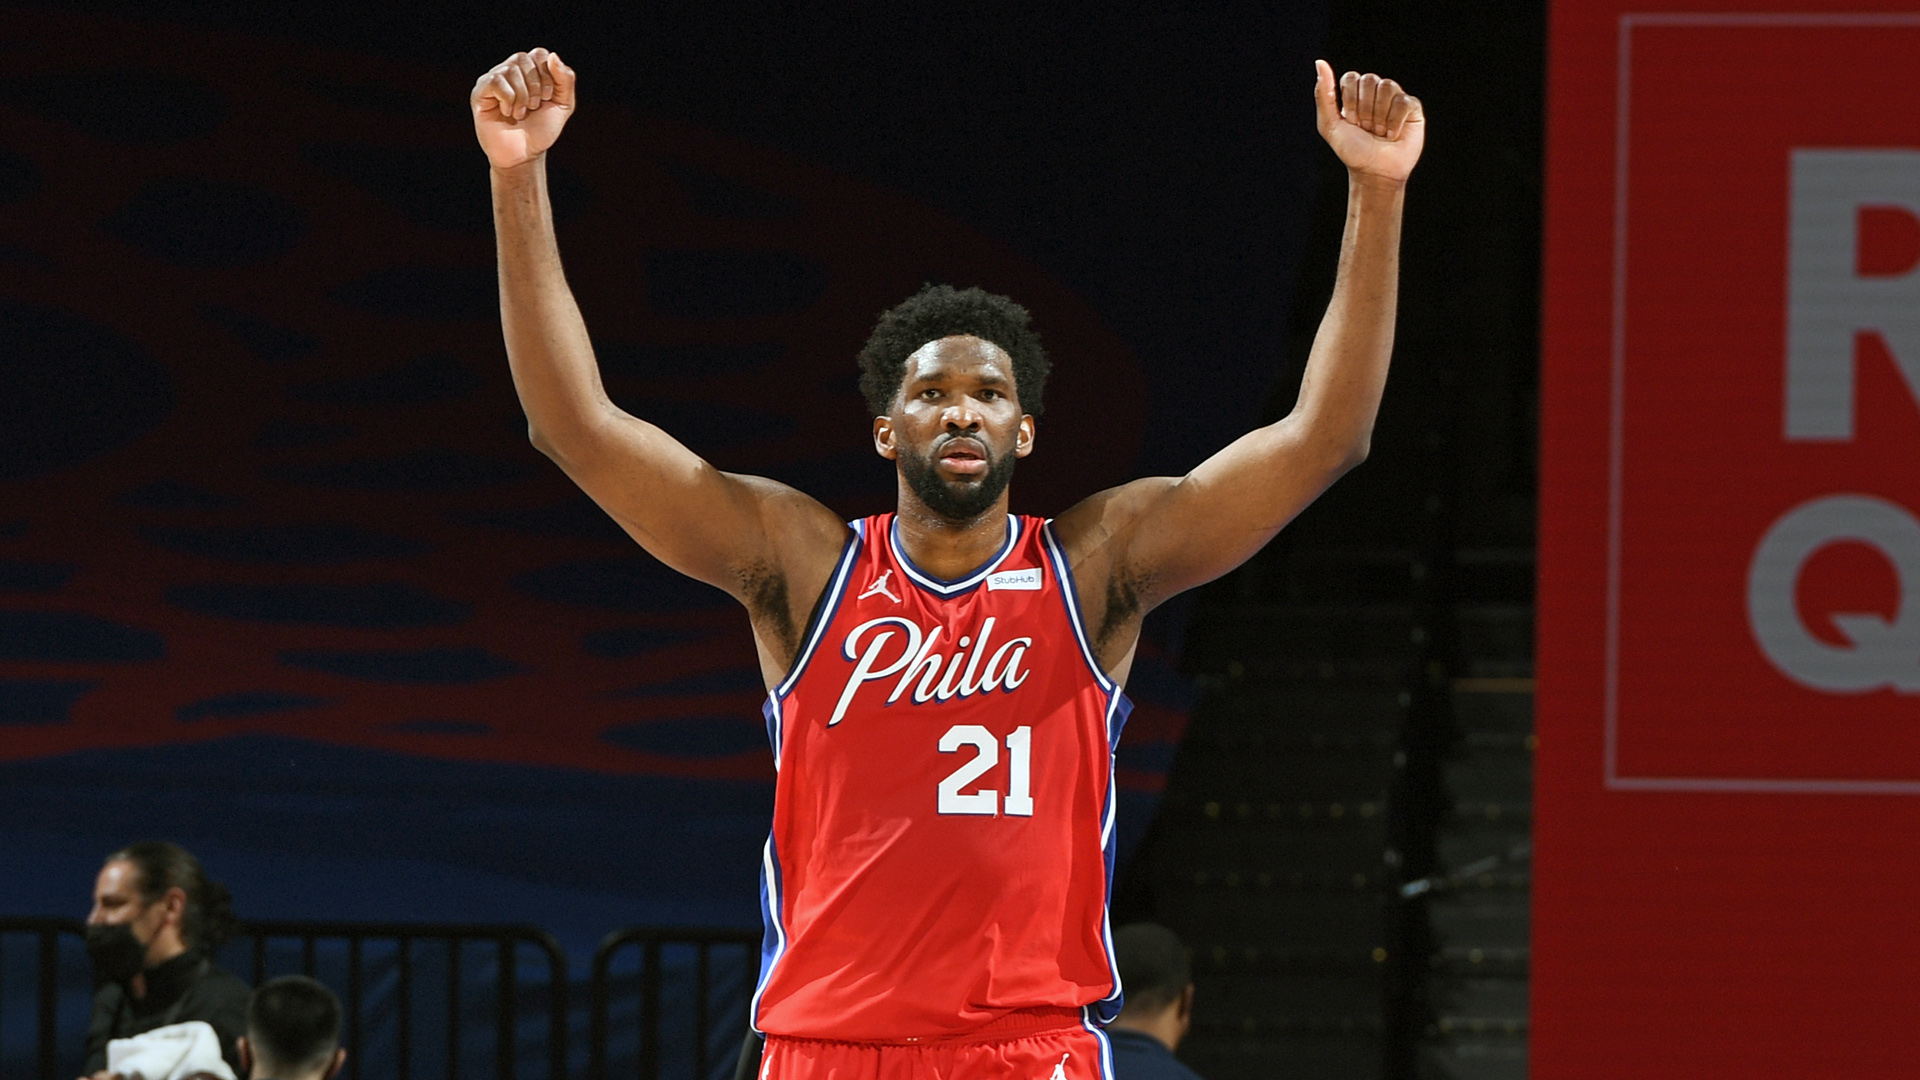 Kia MVP Ladder: Embiid keeps the No. 1 spot